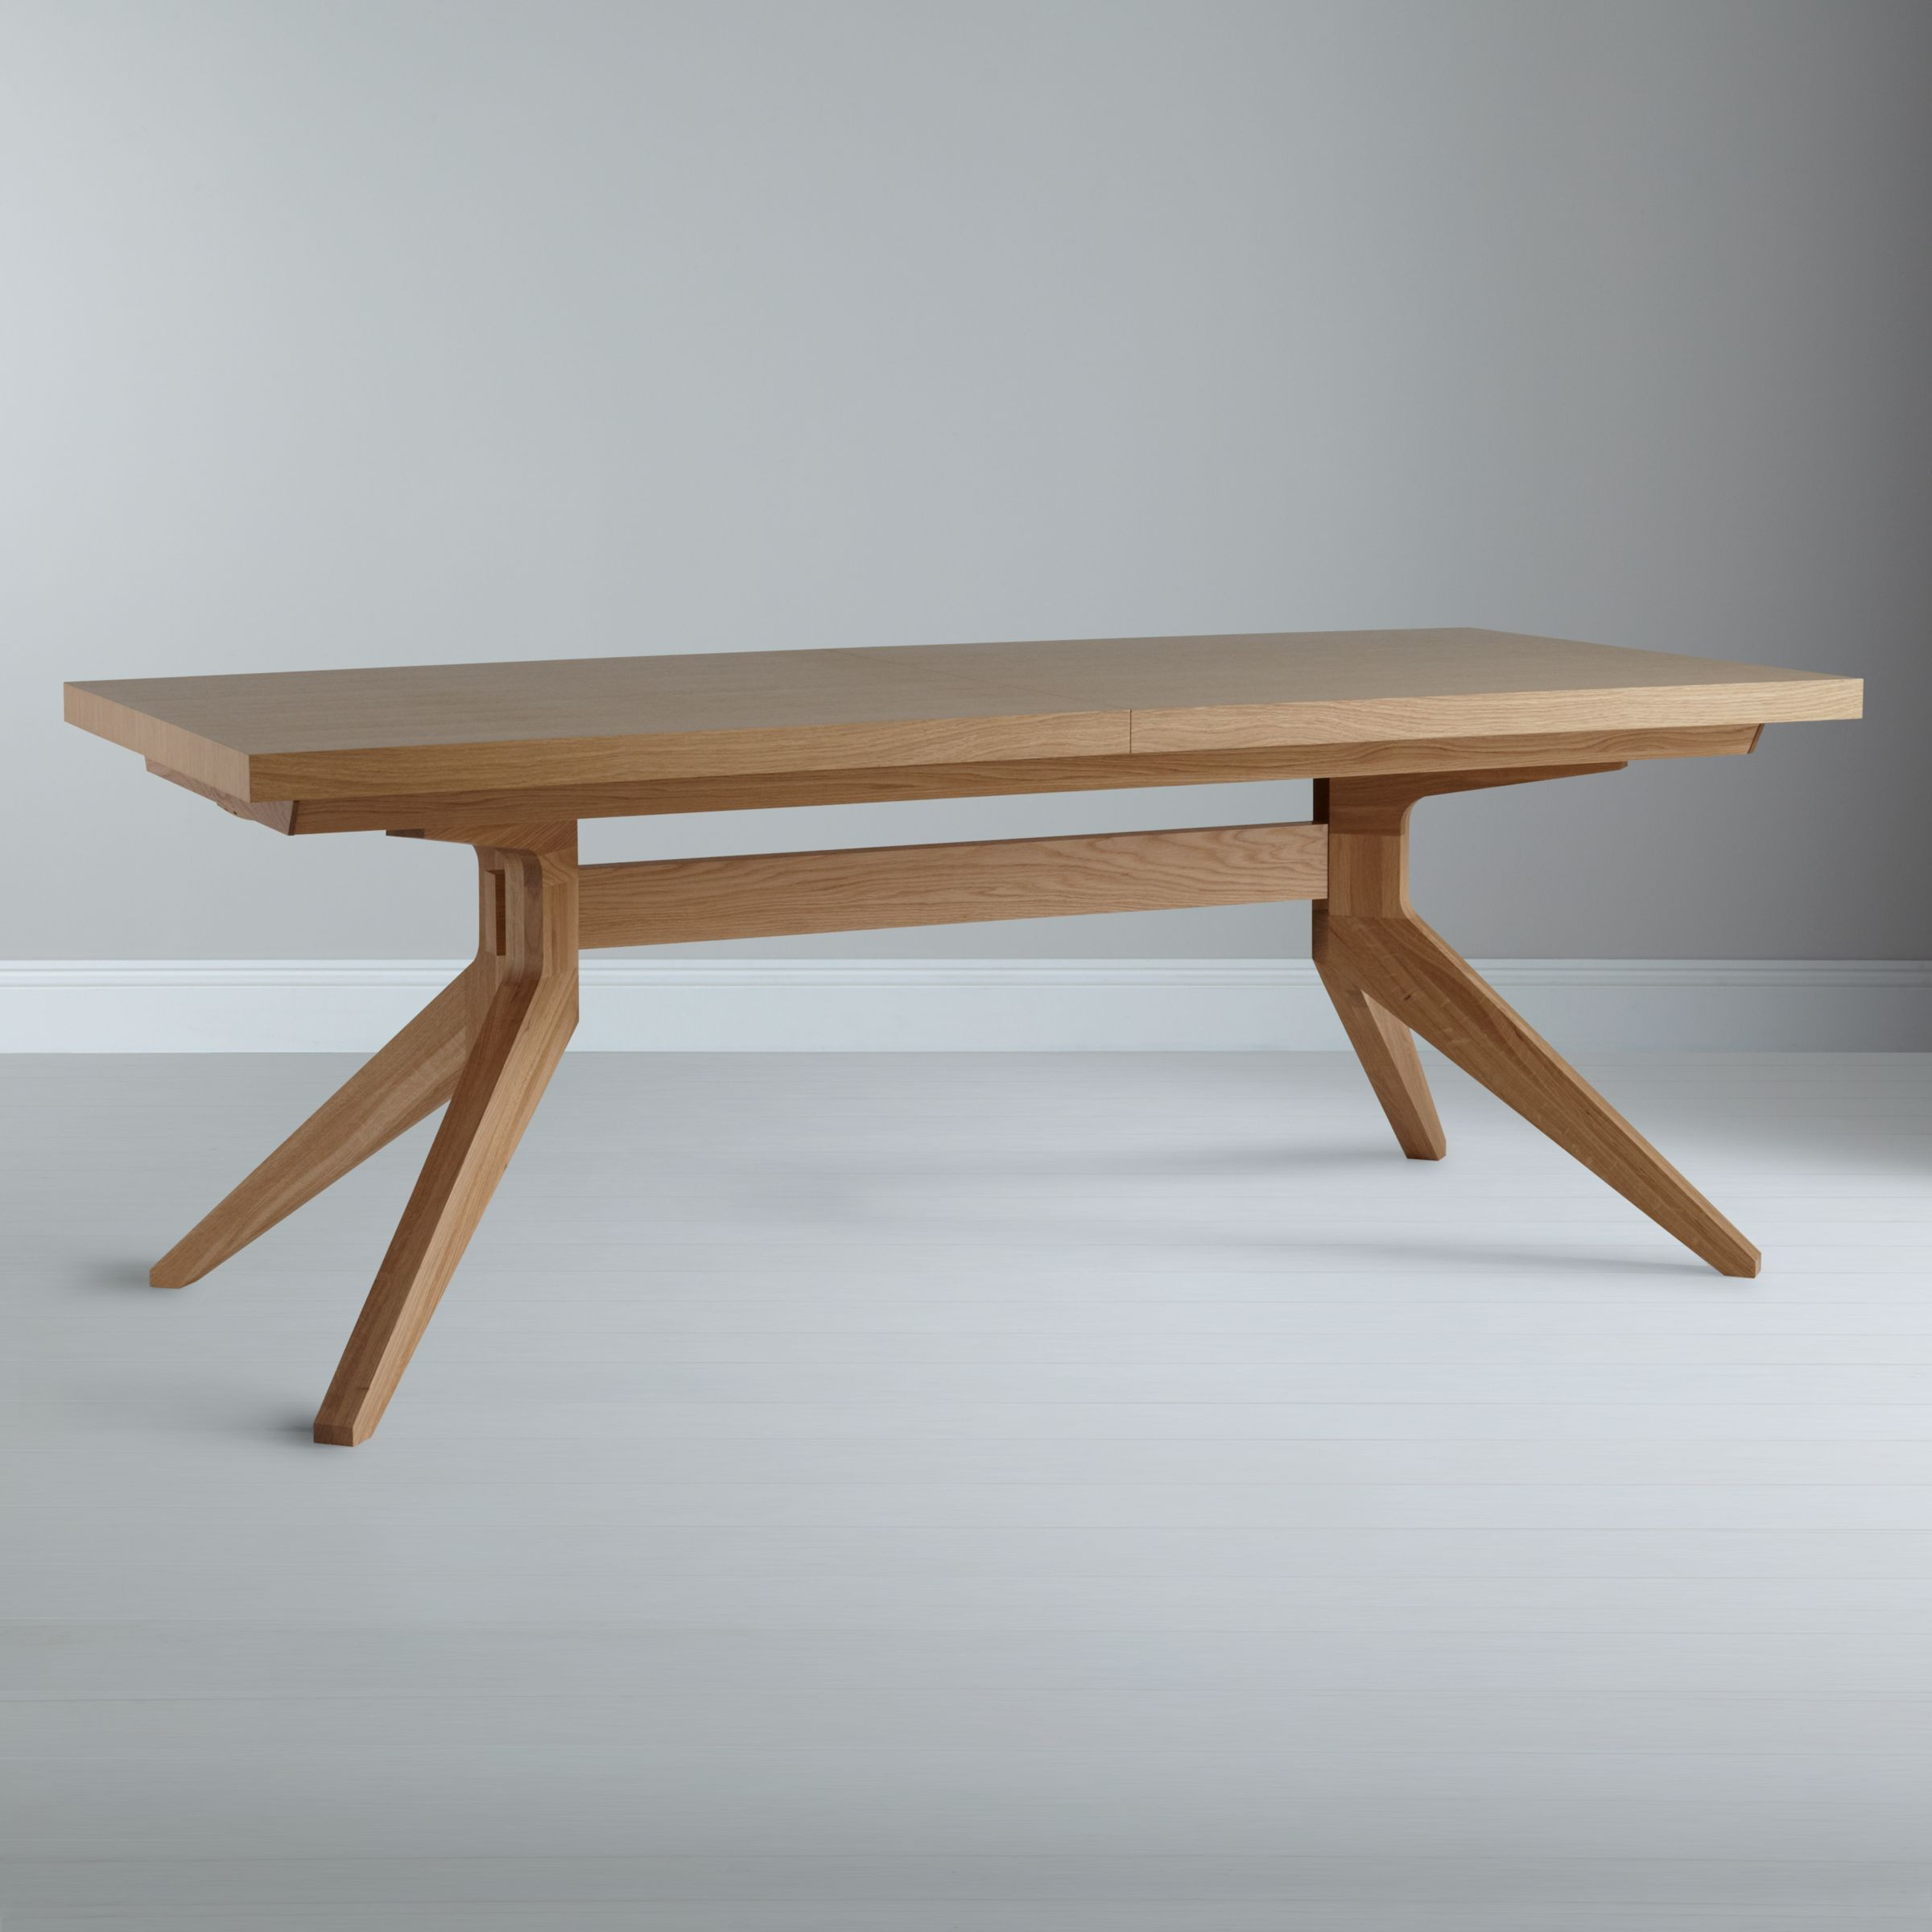 Mathew Hilton for Case Cross Extending Dining Table, 200-295cm